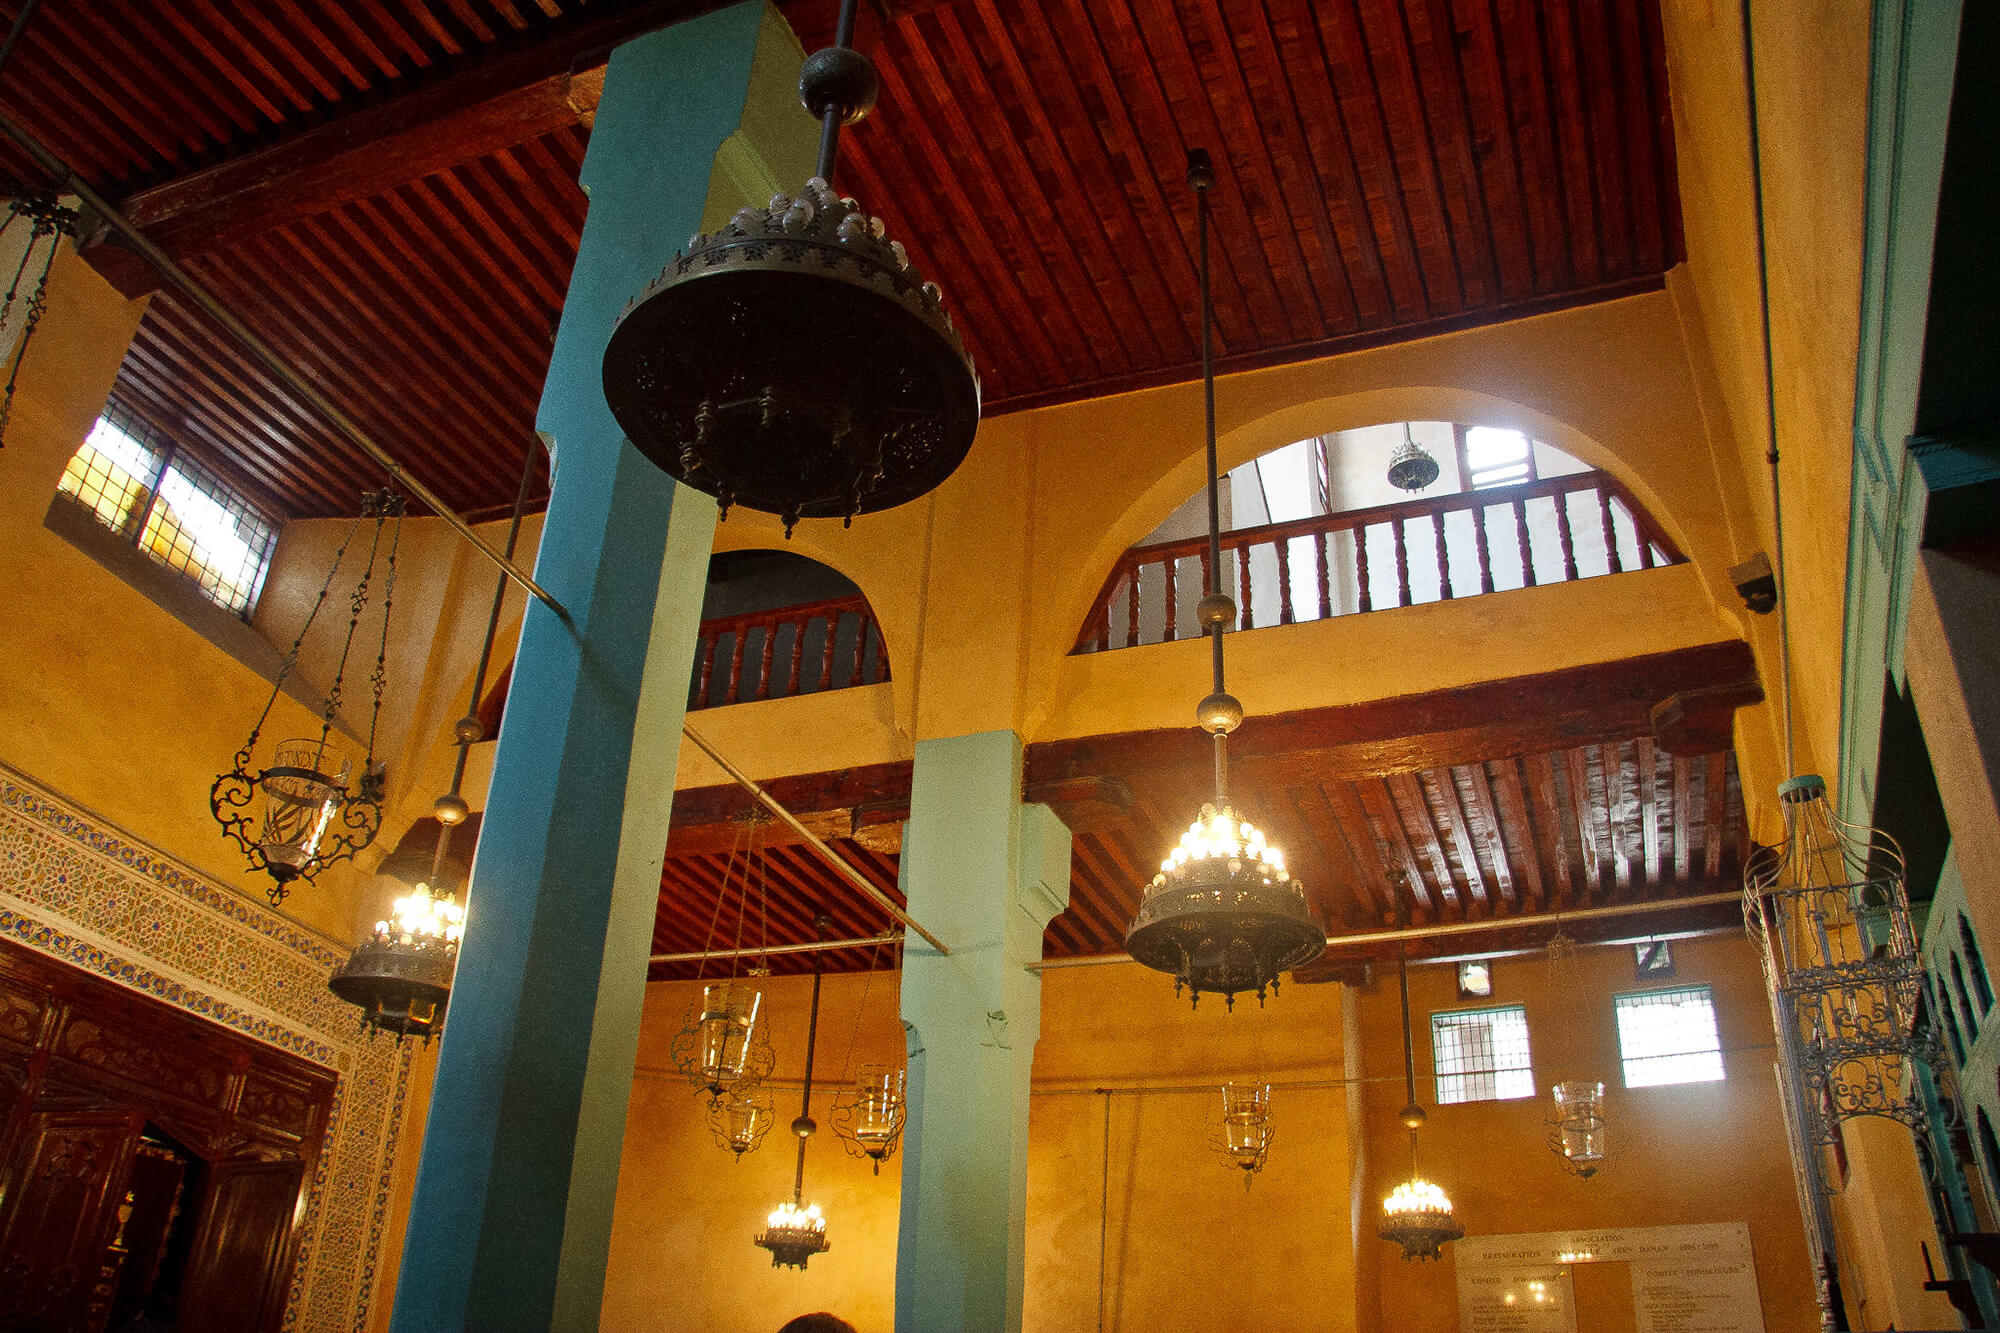 Sahara Desert Tour - What To Do and See in Fez - The Mellah (Jewish Quarter)